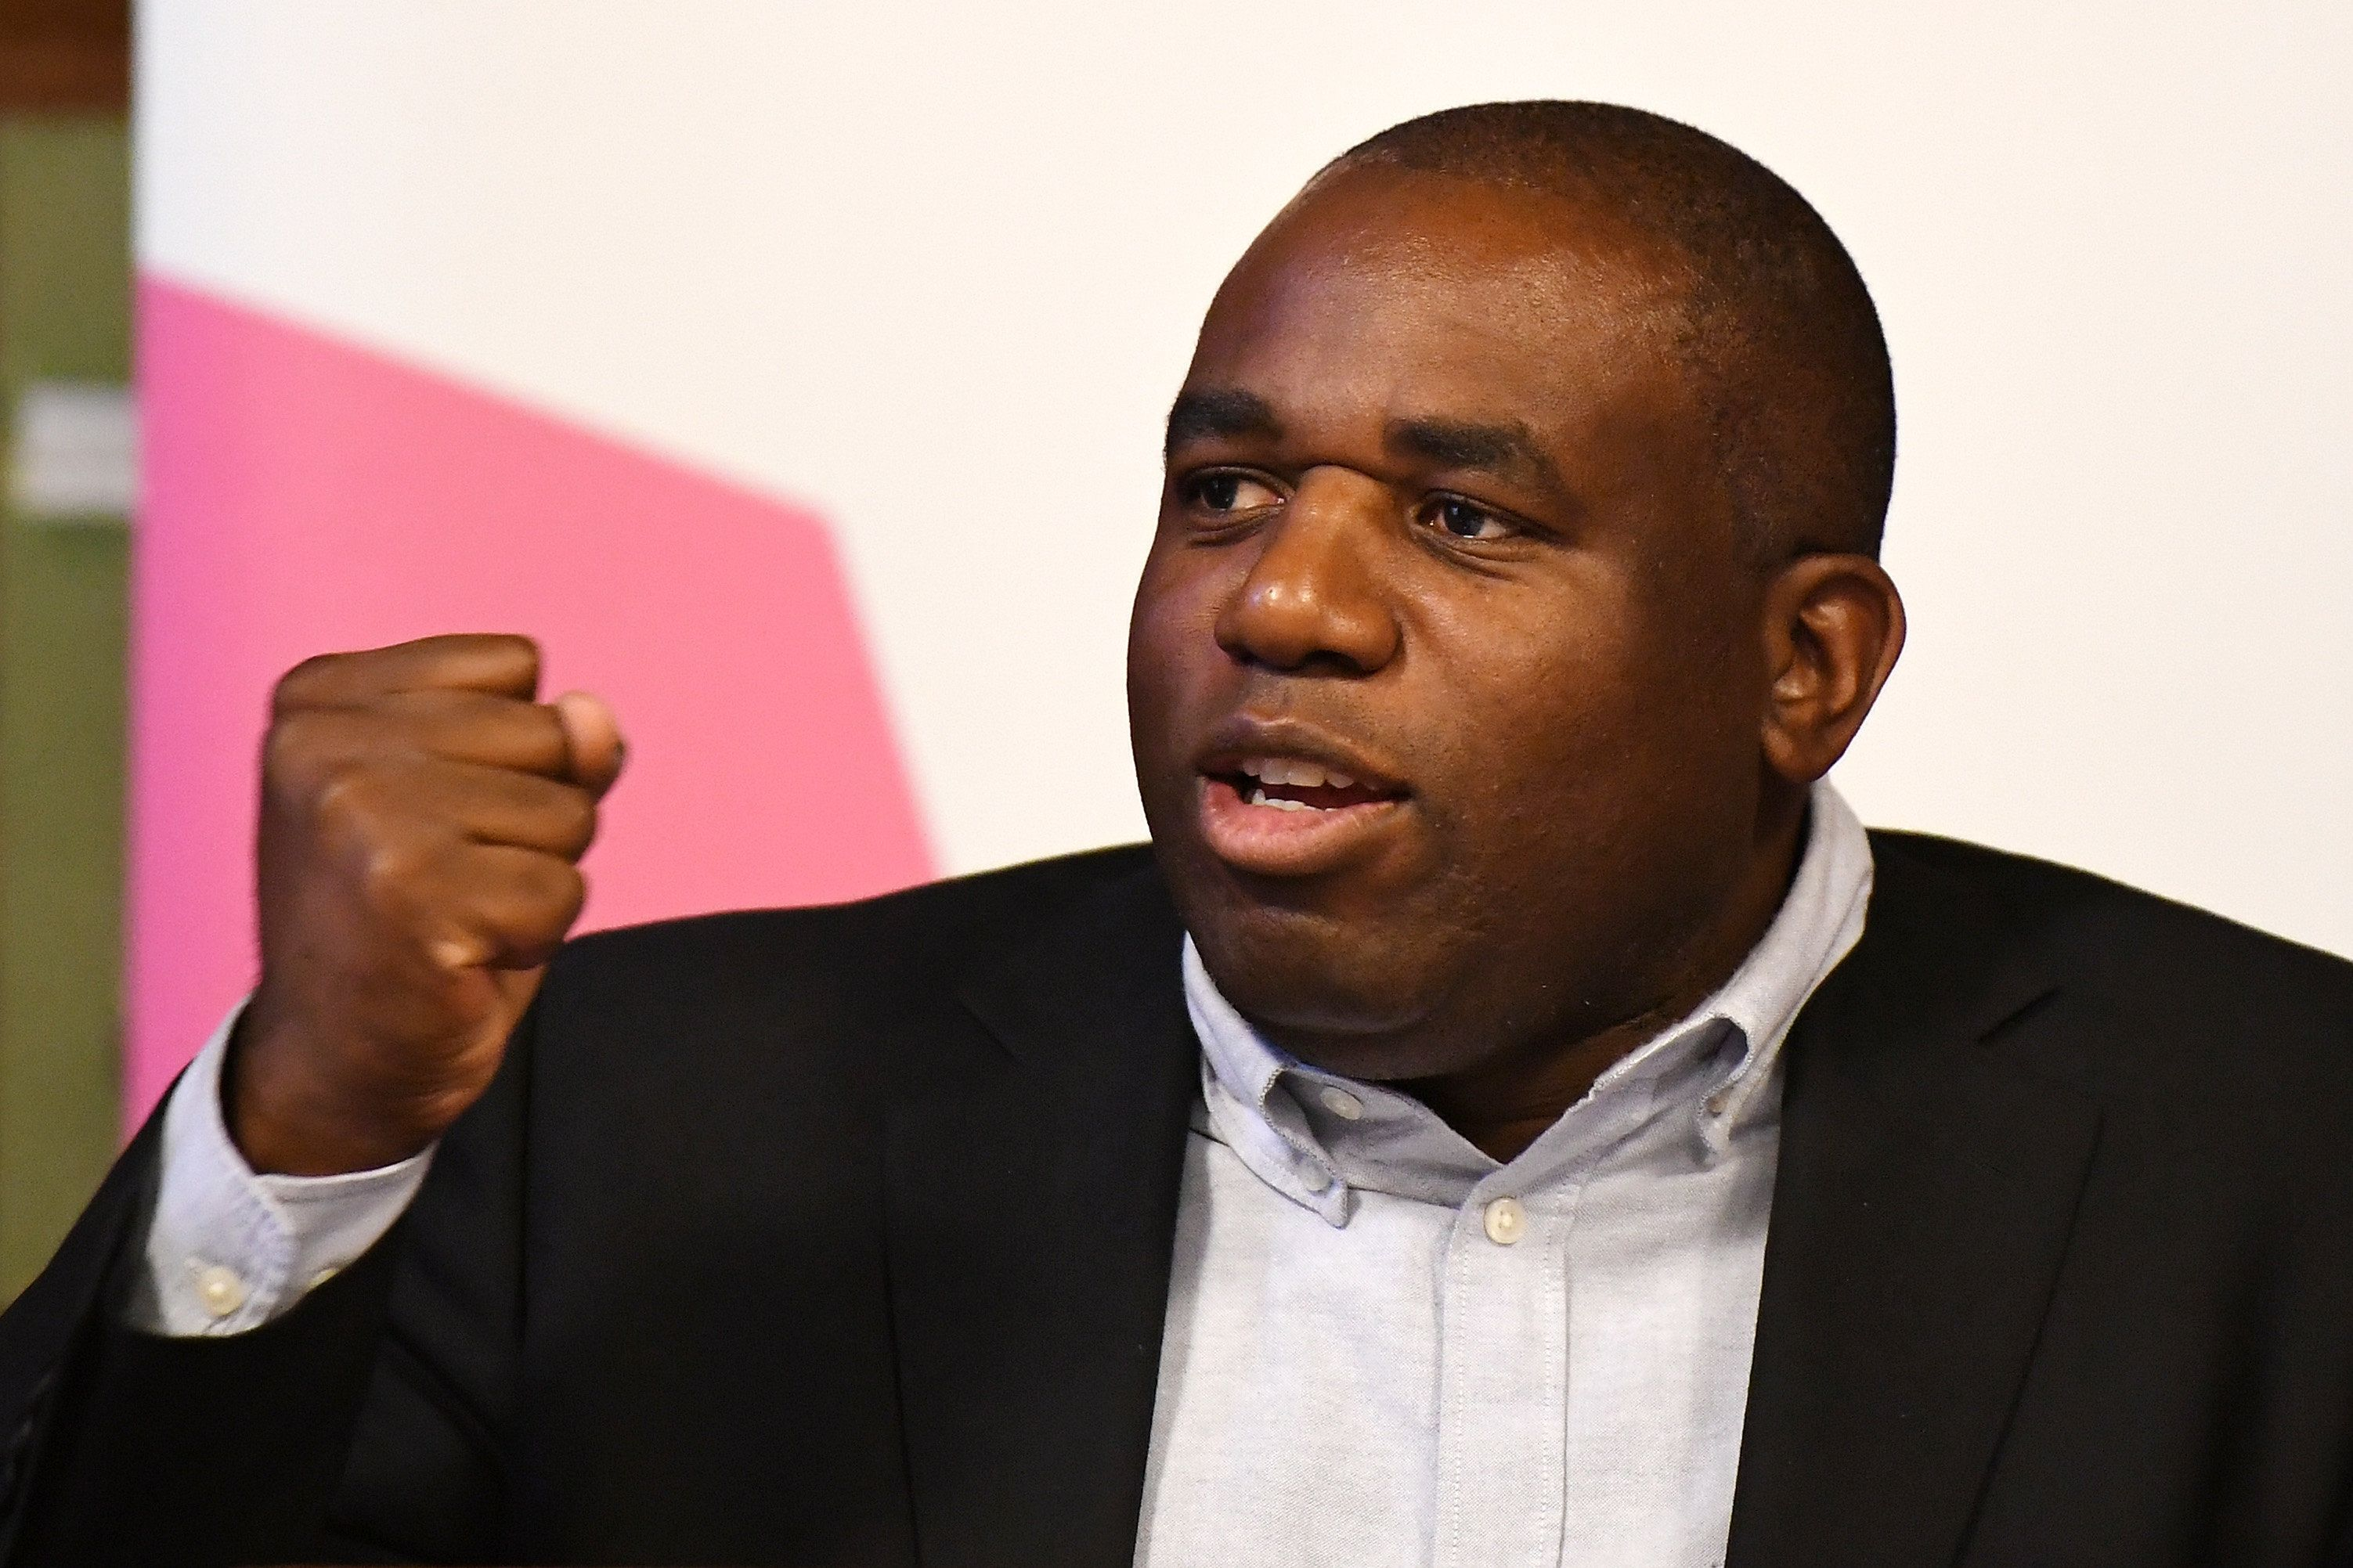 Labour MP David Lammy has called Oxford University as 'bastion of white